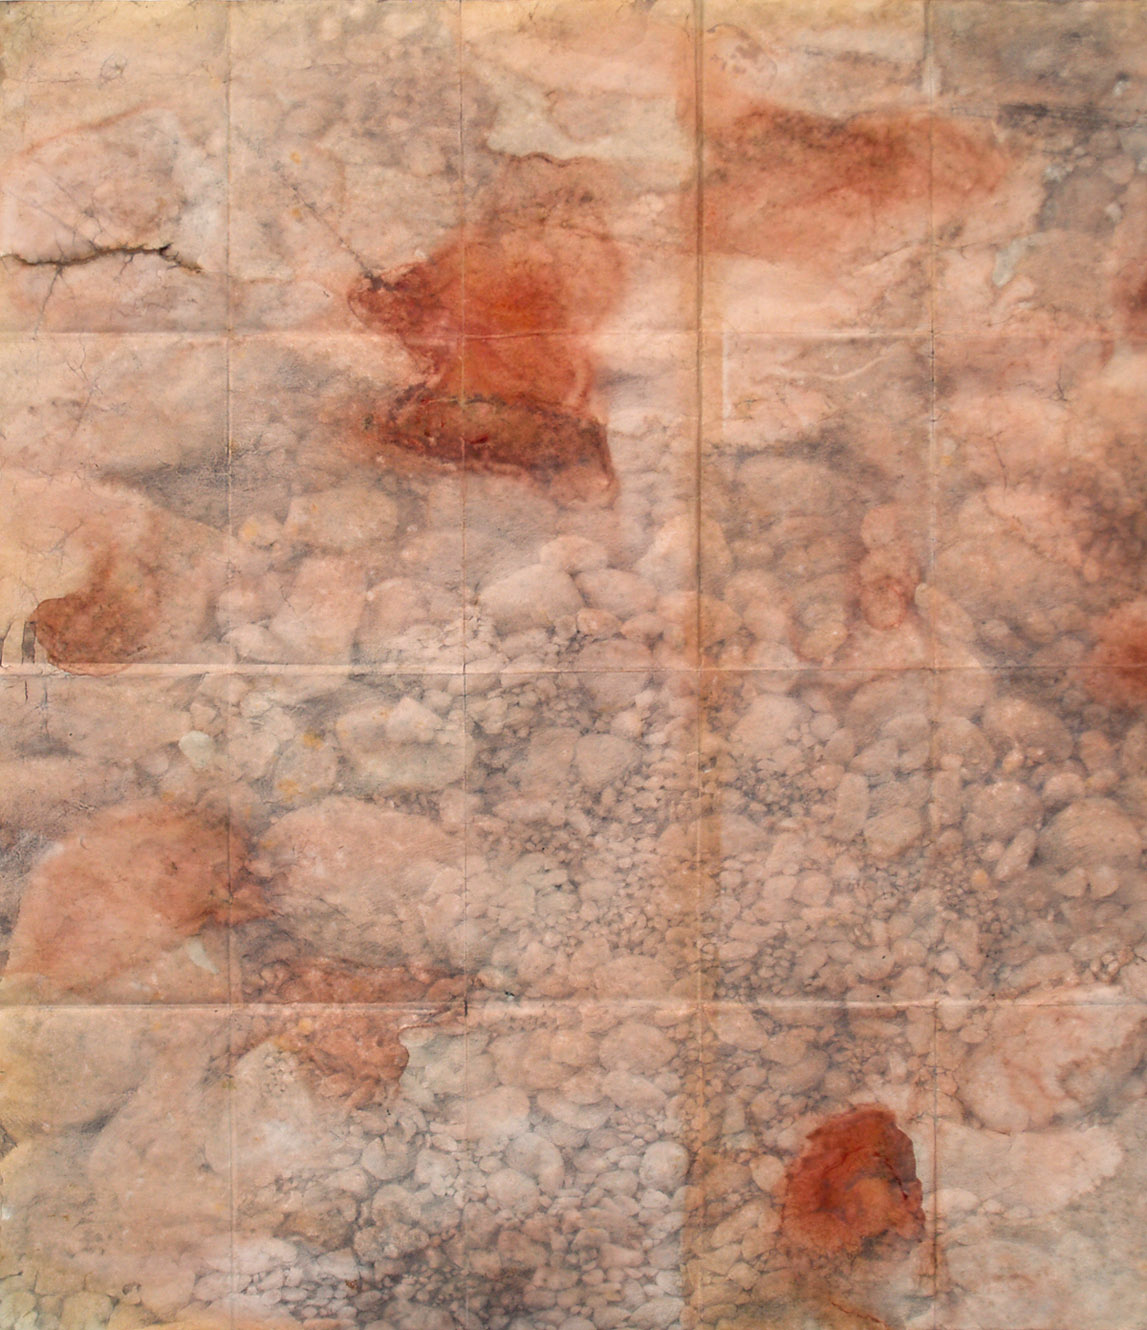 Trail Map I, ink, shellac and pencil, 64 x 55 cm, 2012